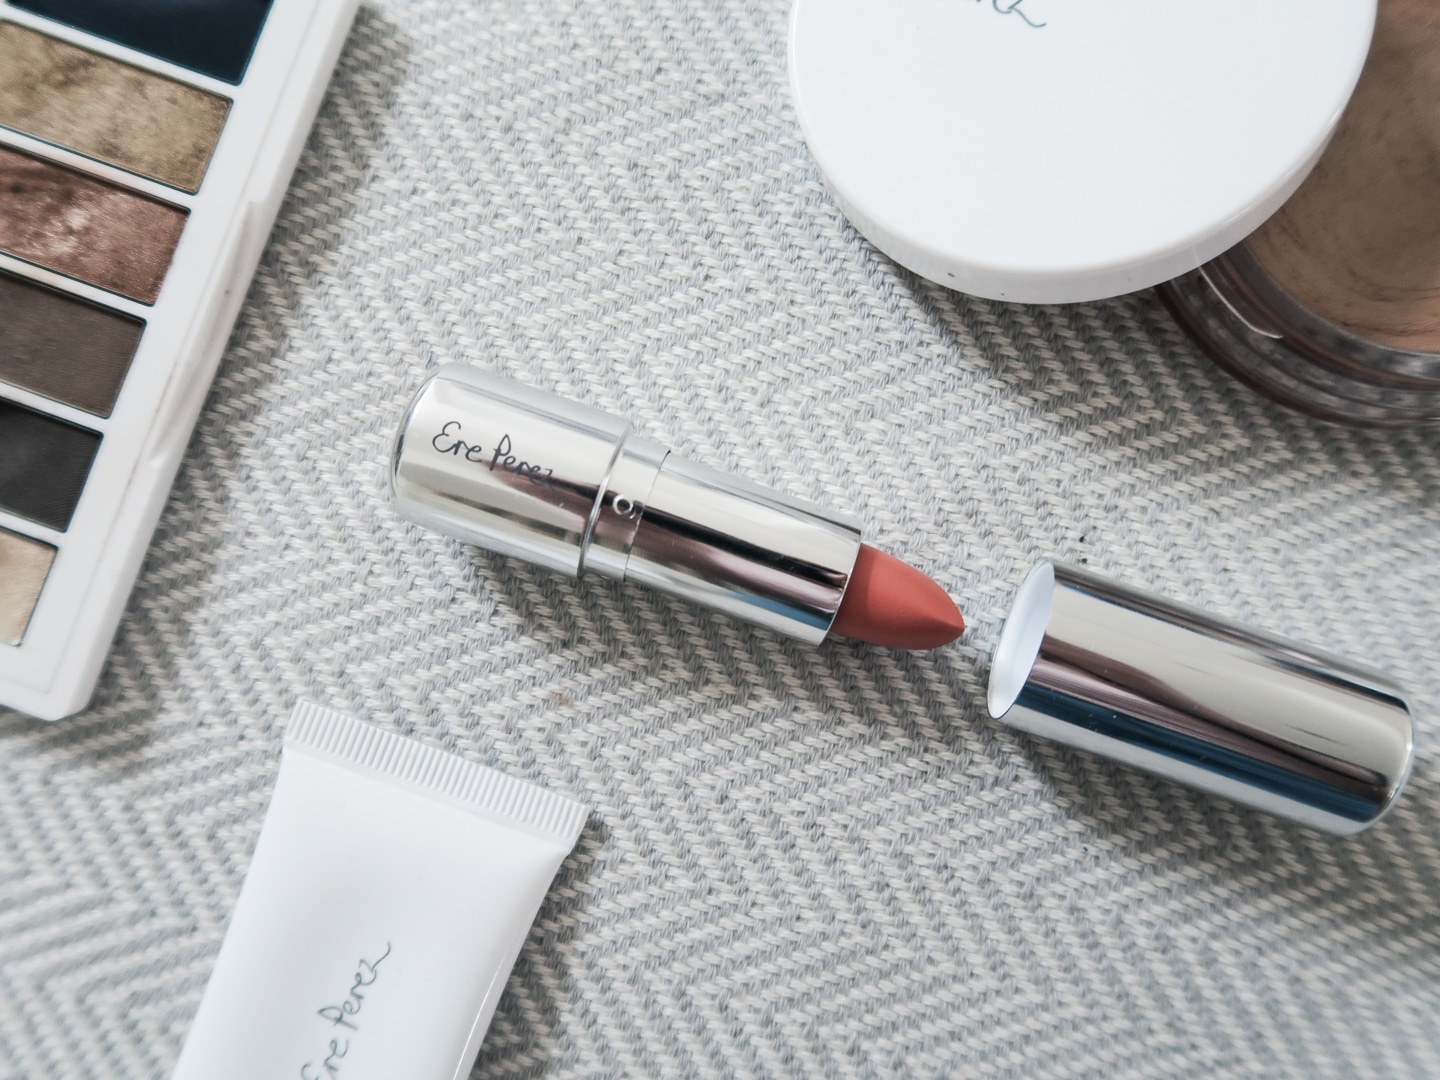 Ere Perez Olive Oil Lipstick Review | Curiously Conscious